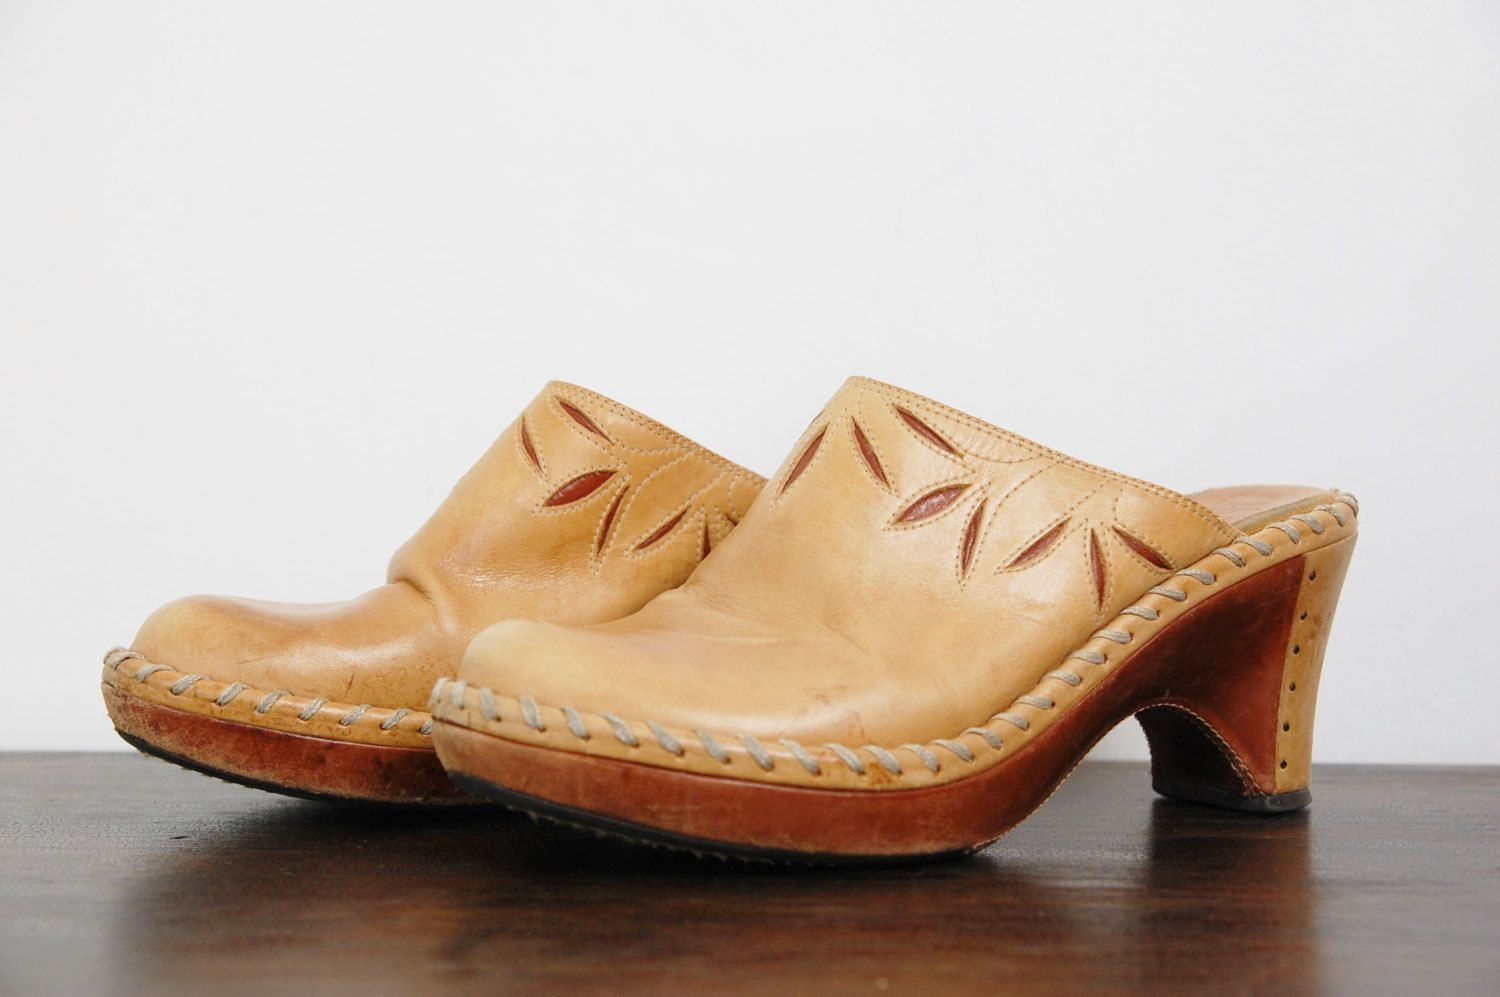 ab6b9eb1b39 Vintage Frye Clogs by oakmoss on Etsy https   www.etsy.com